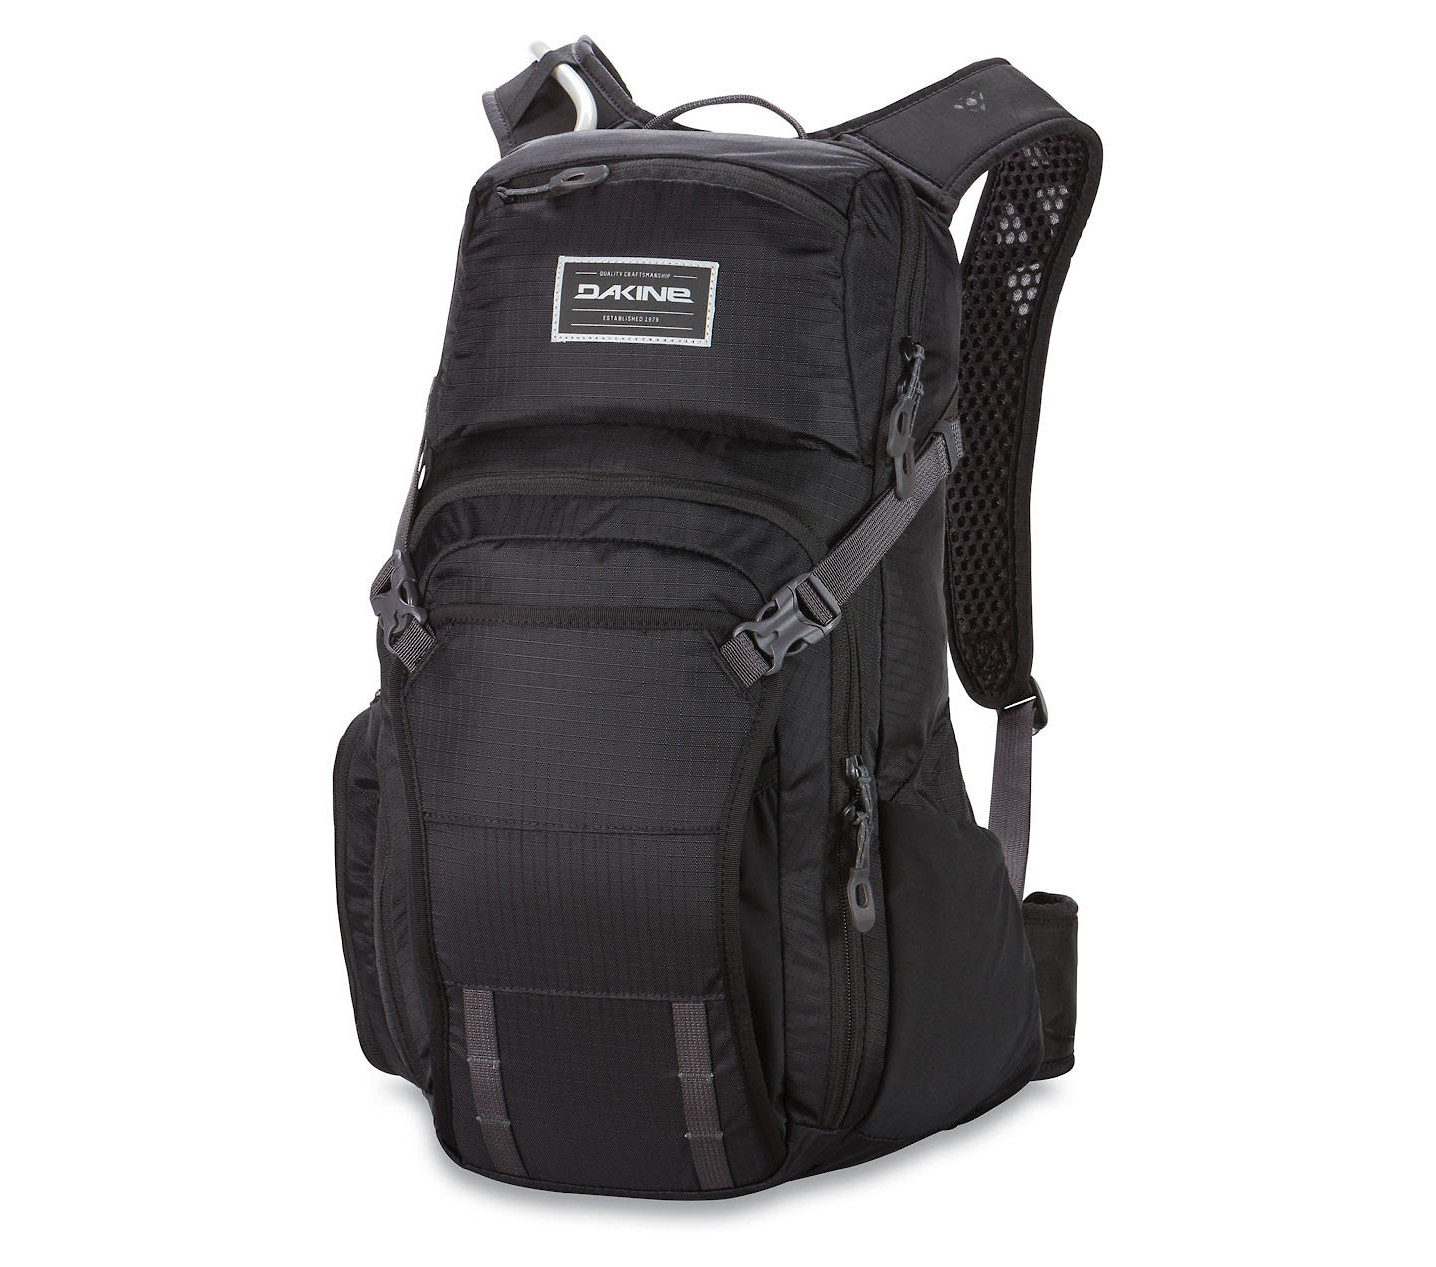 Dakine Drafter 14l Hydration Pack Reviews Comparisons